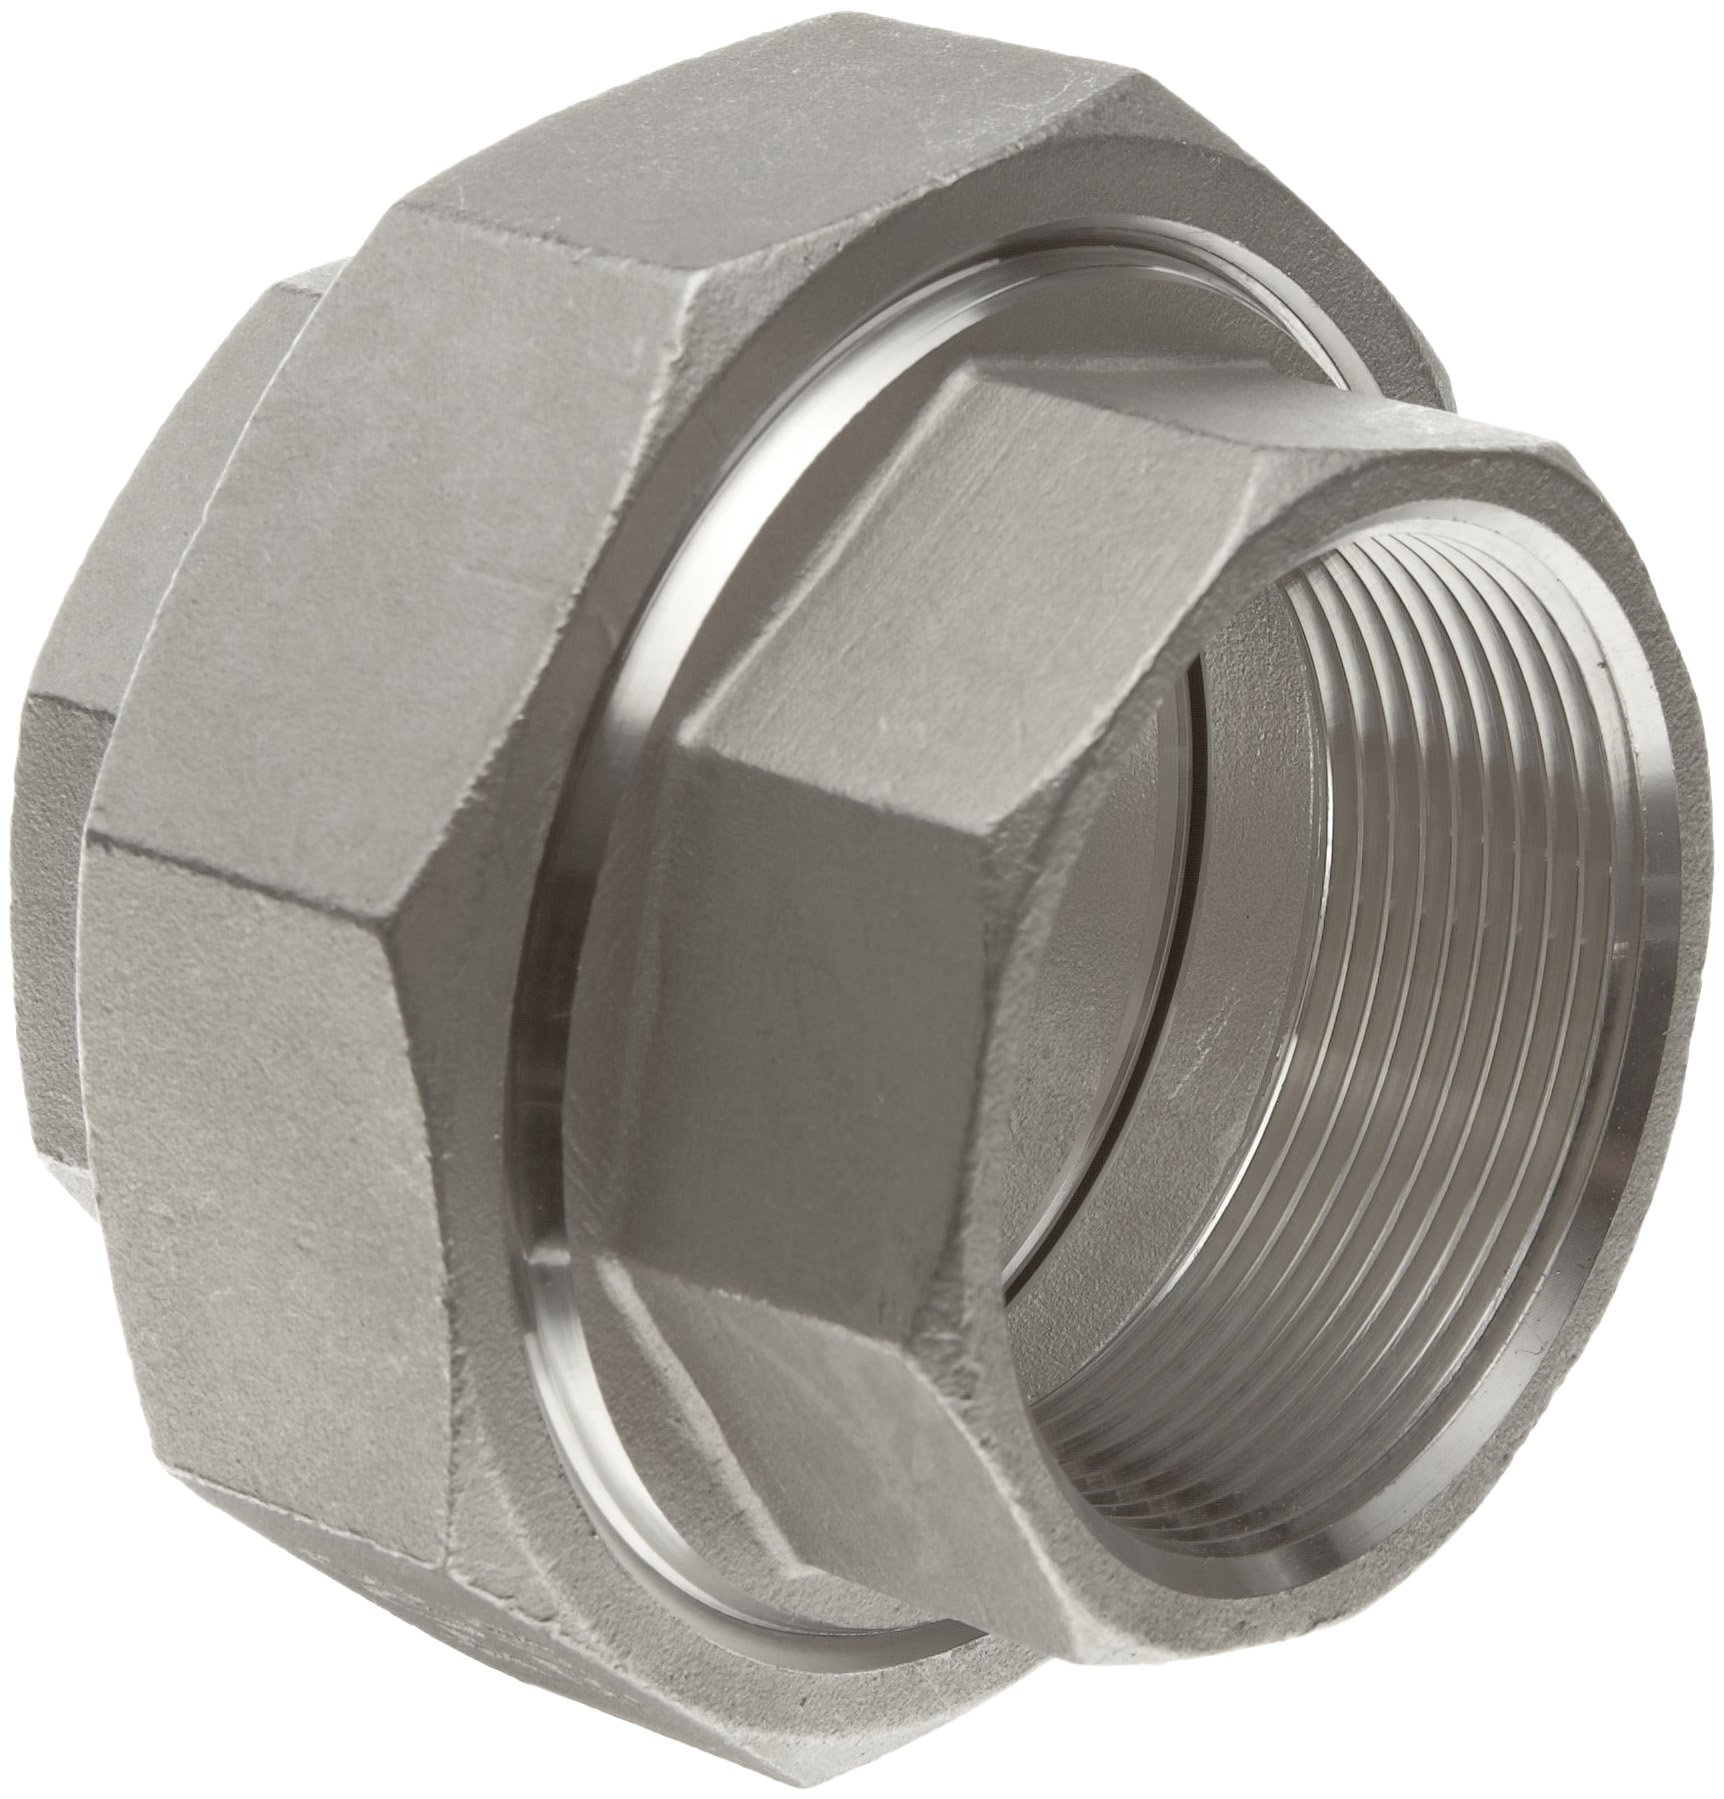 Stainless Steel 304 Cast Pipe Fitting, Union, Class 150, 1'' NPT Female